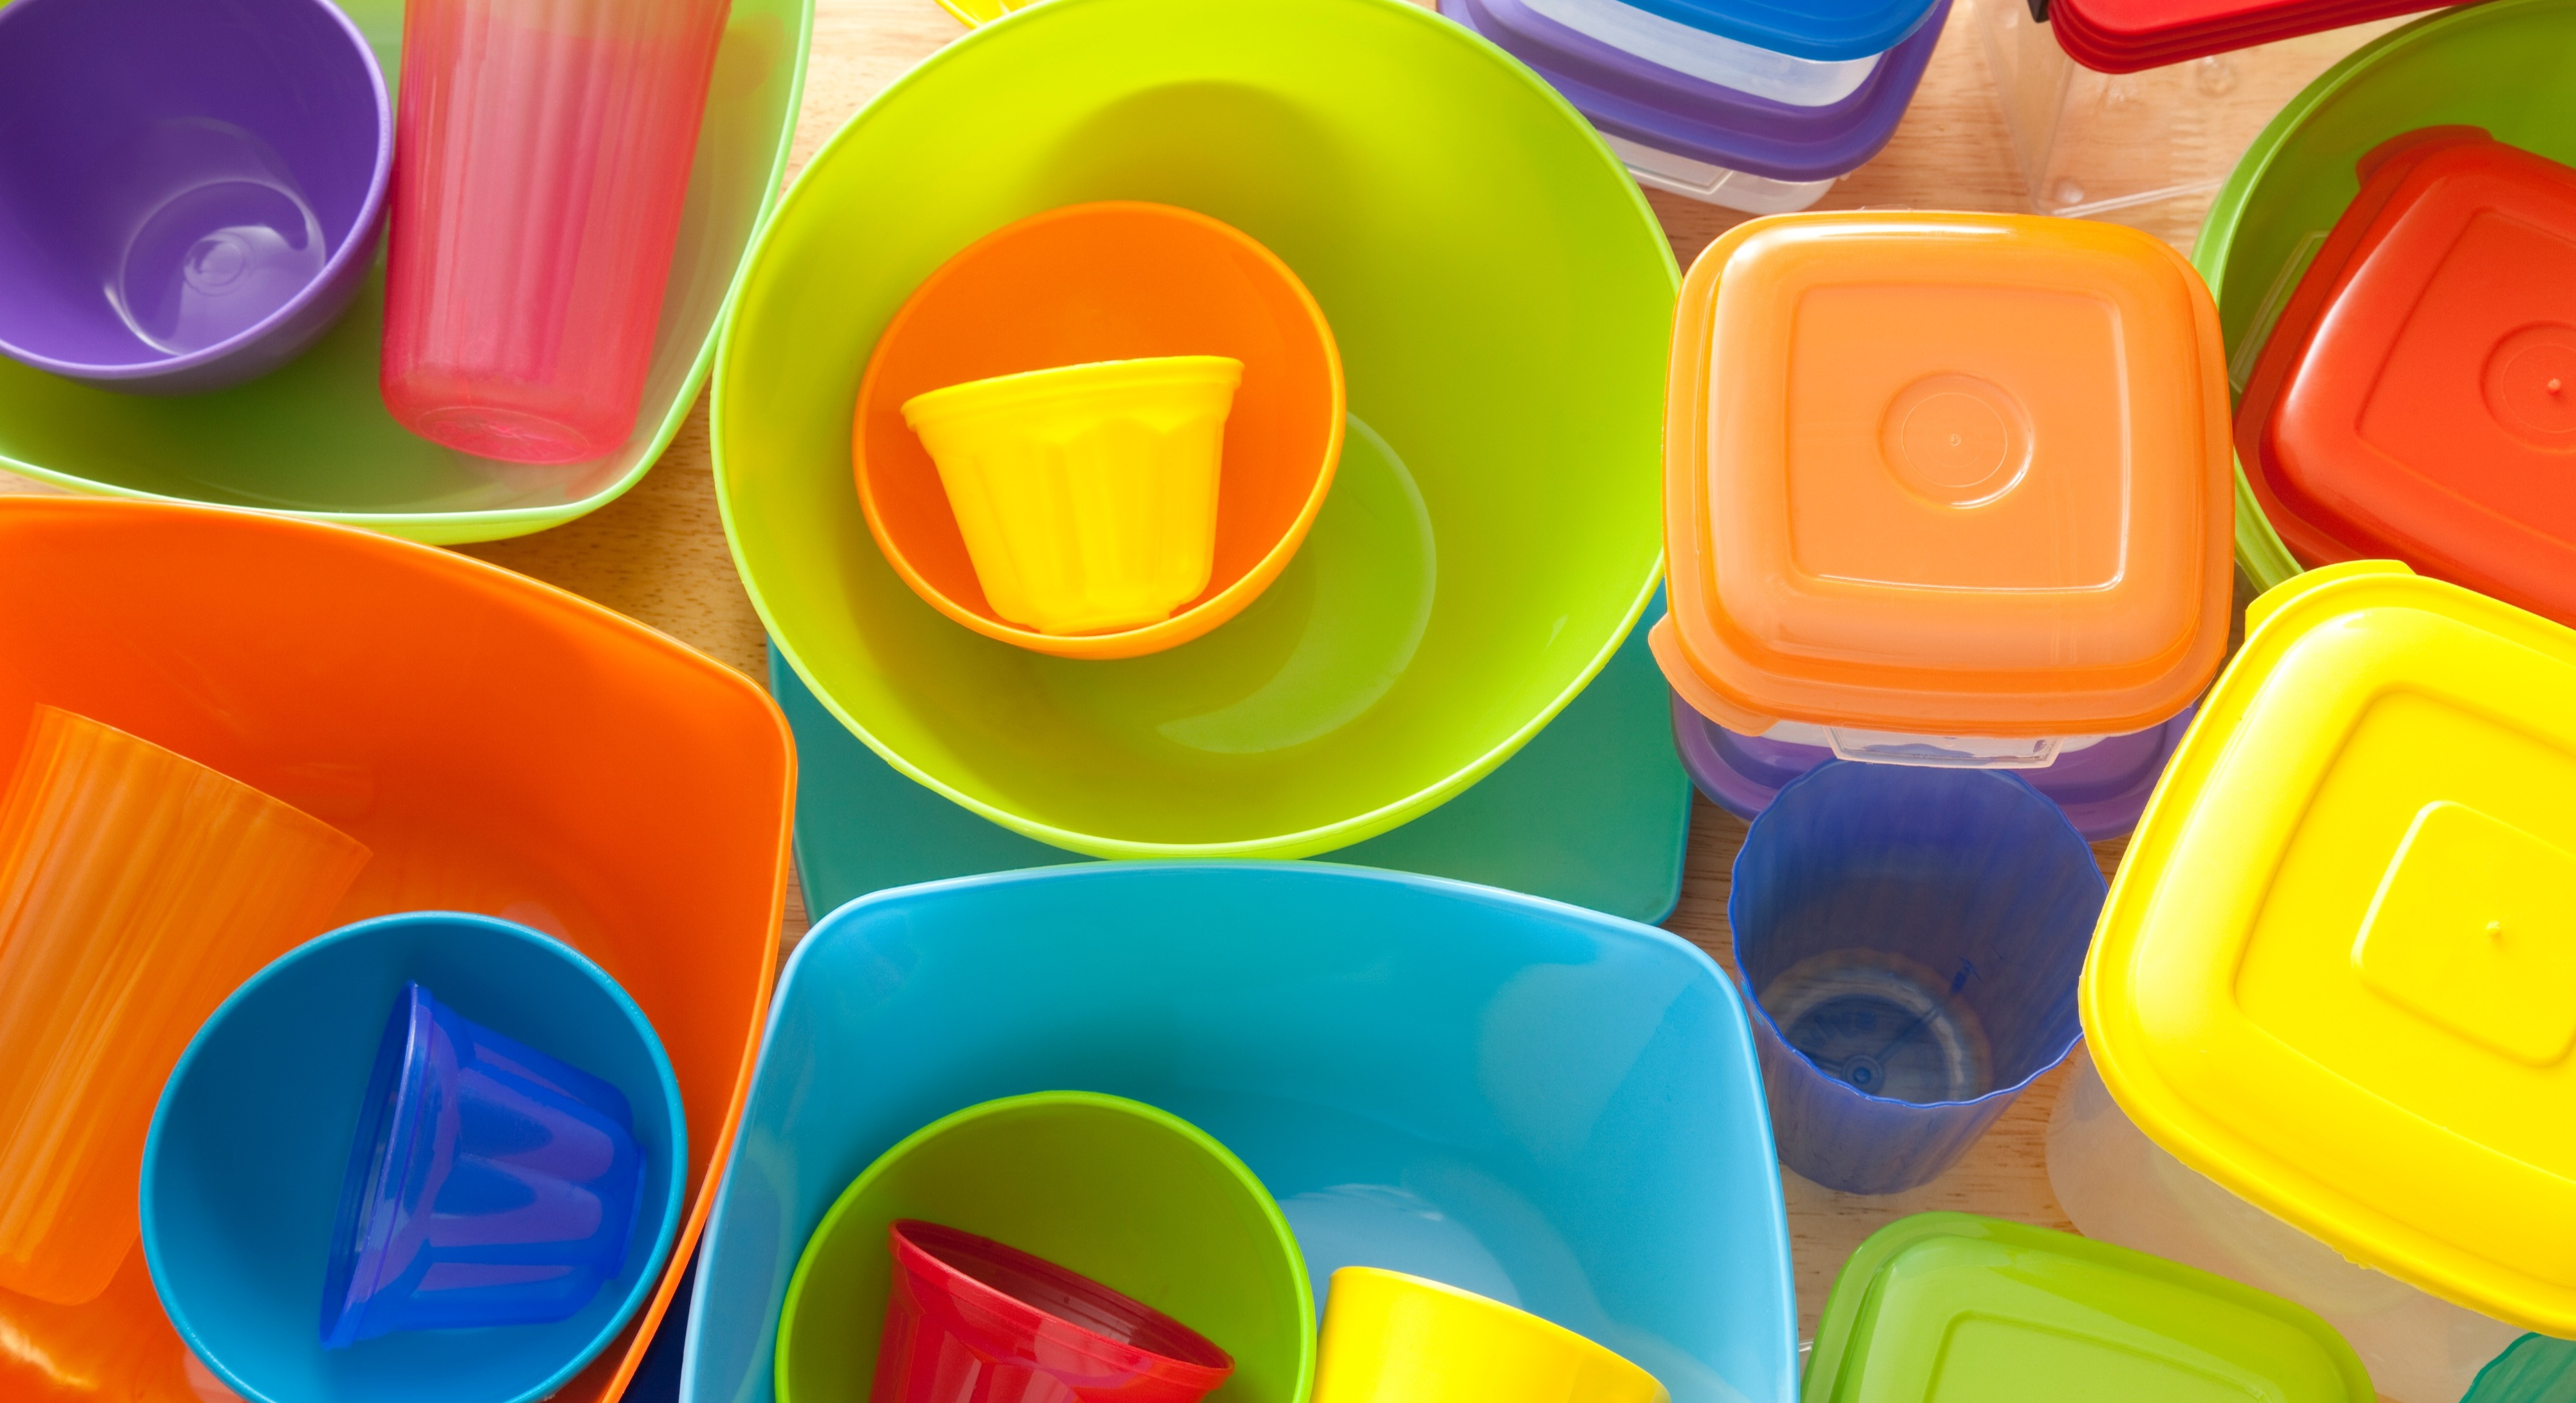 A mum has warned that old Tupperware may contain lead and arsenic [Image: Getty]